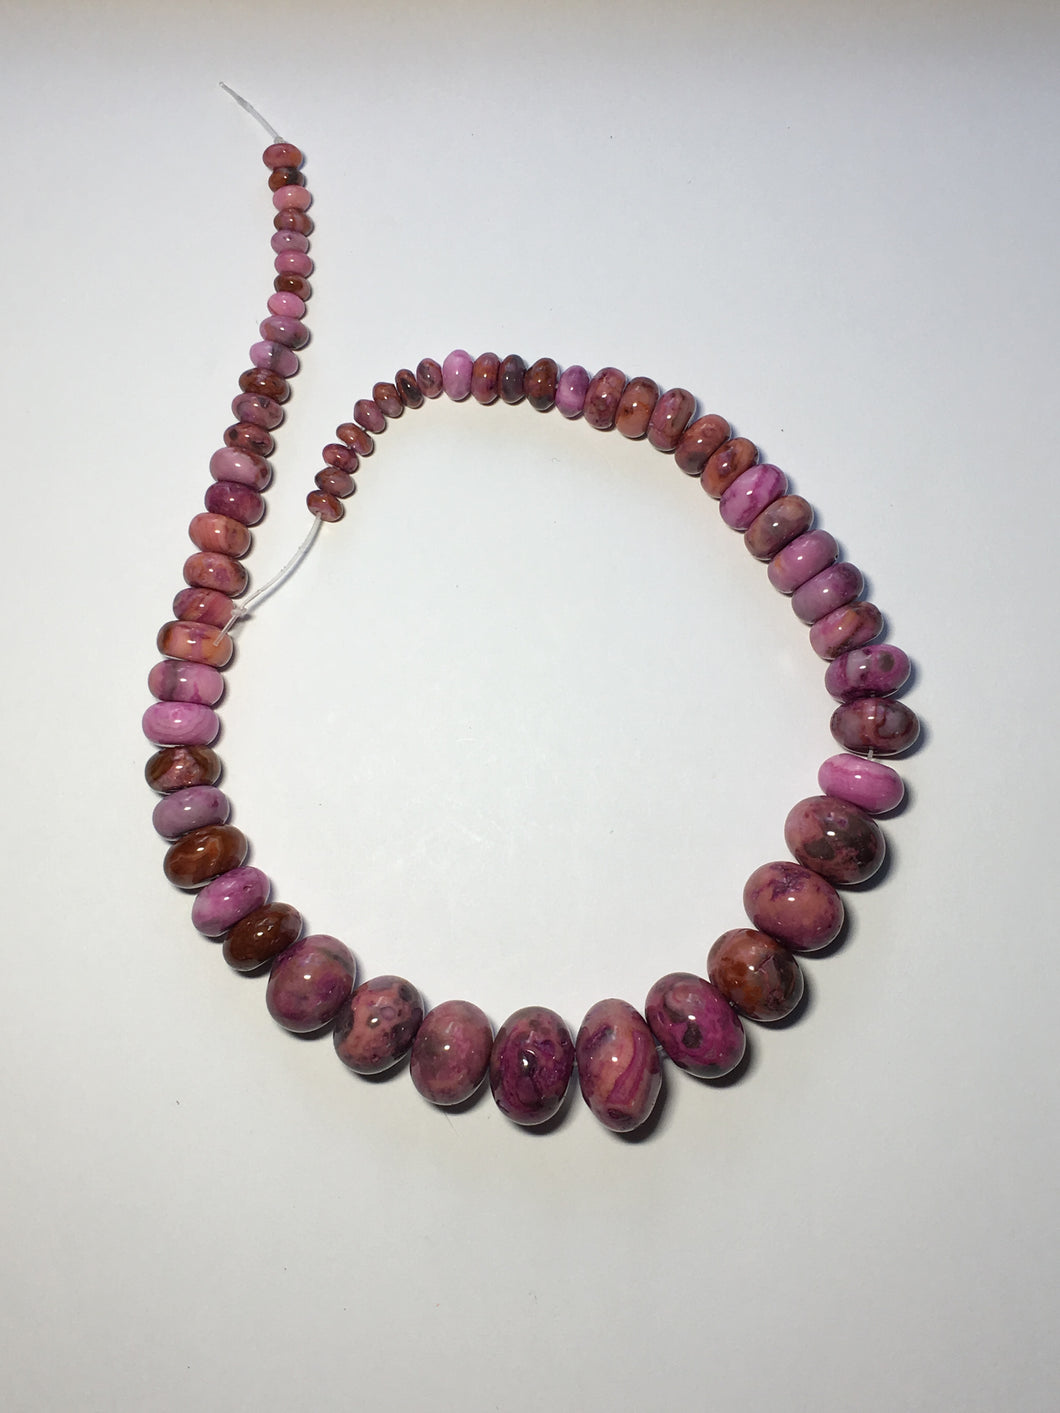 Purple Crazy Lace Agate Rondelles, Semi-Precious Stone Beads, 6-16 mm, 16-Inch Strand, Ready-to-Make Necklace